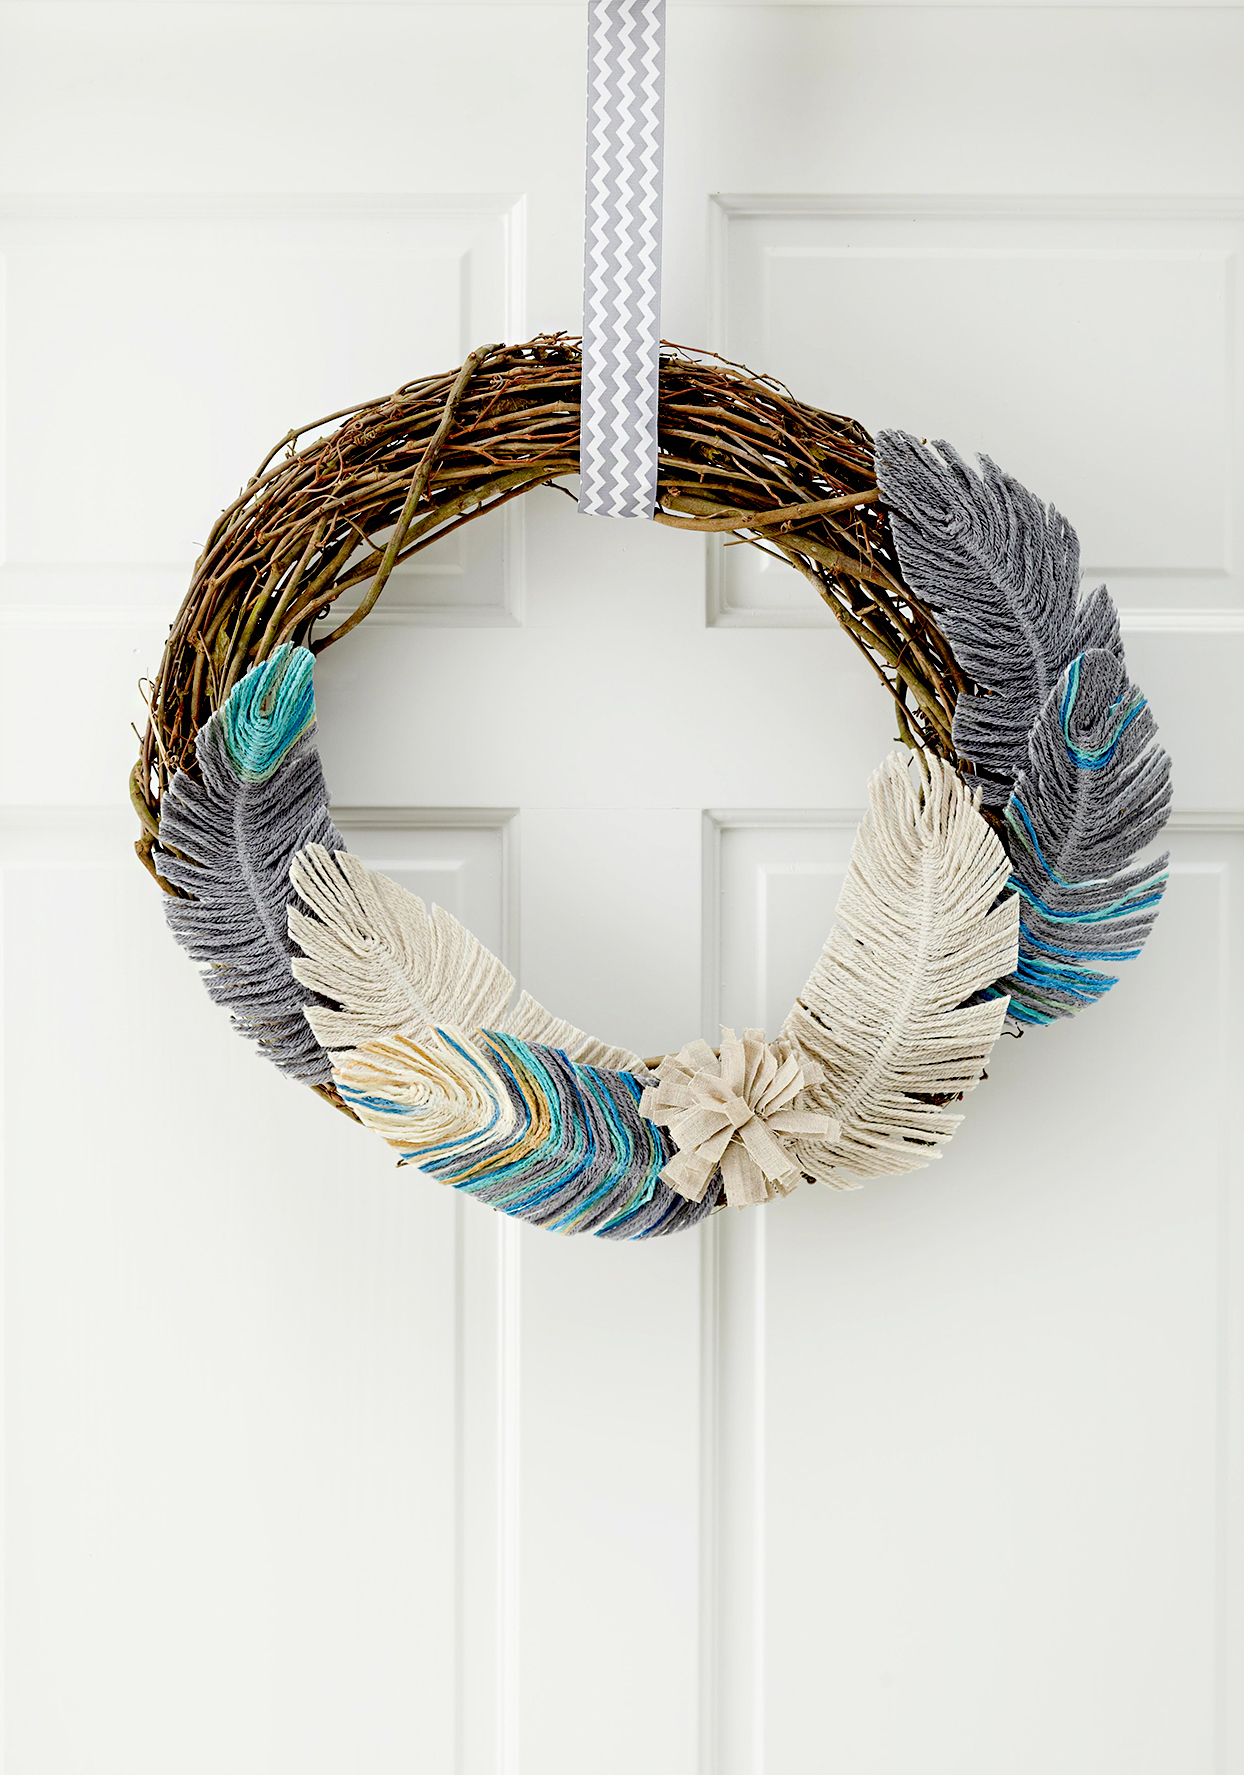 Wreath made of branches and feathers